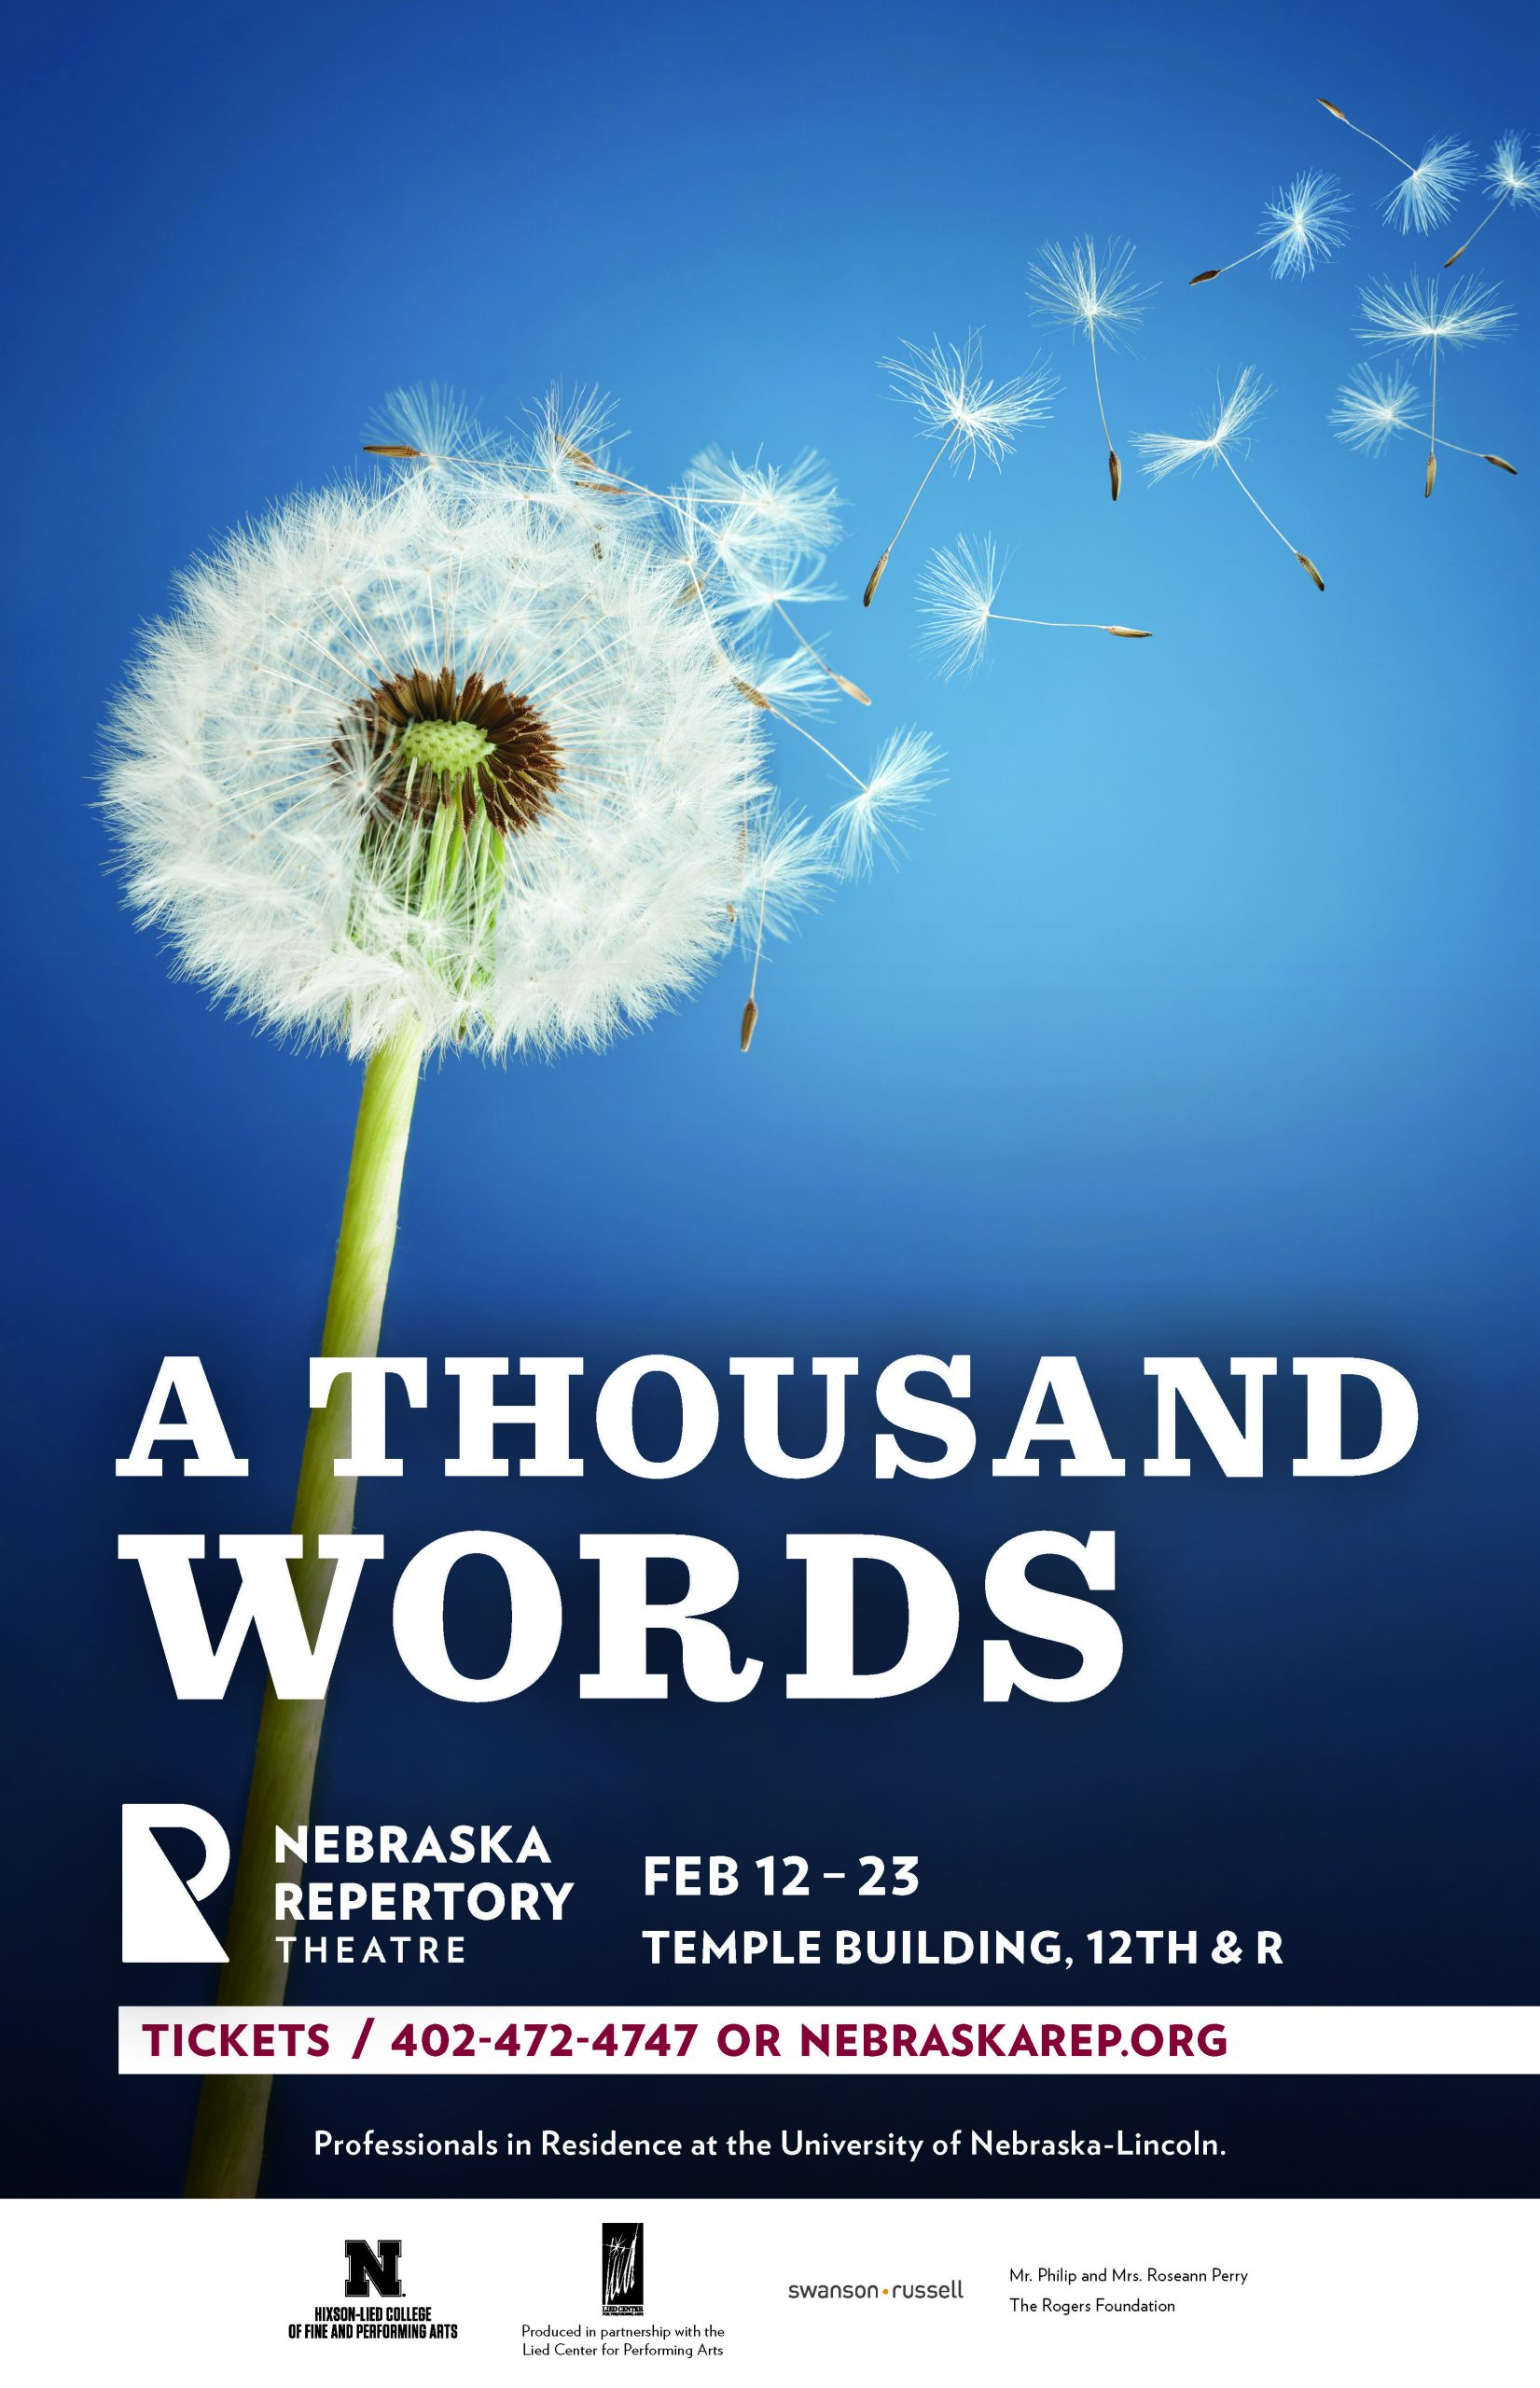 A poster with the title, 'A Thousand Words'. The background features an image of a dandelion fluff with its fluffy seeds being blown away over a blue background.